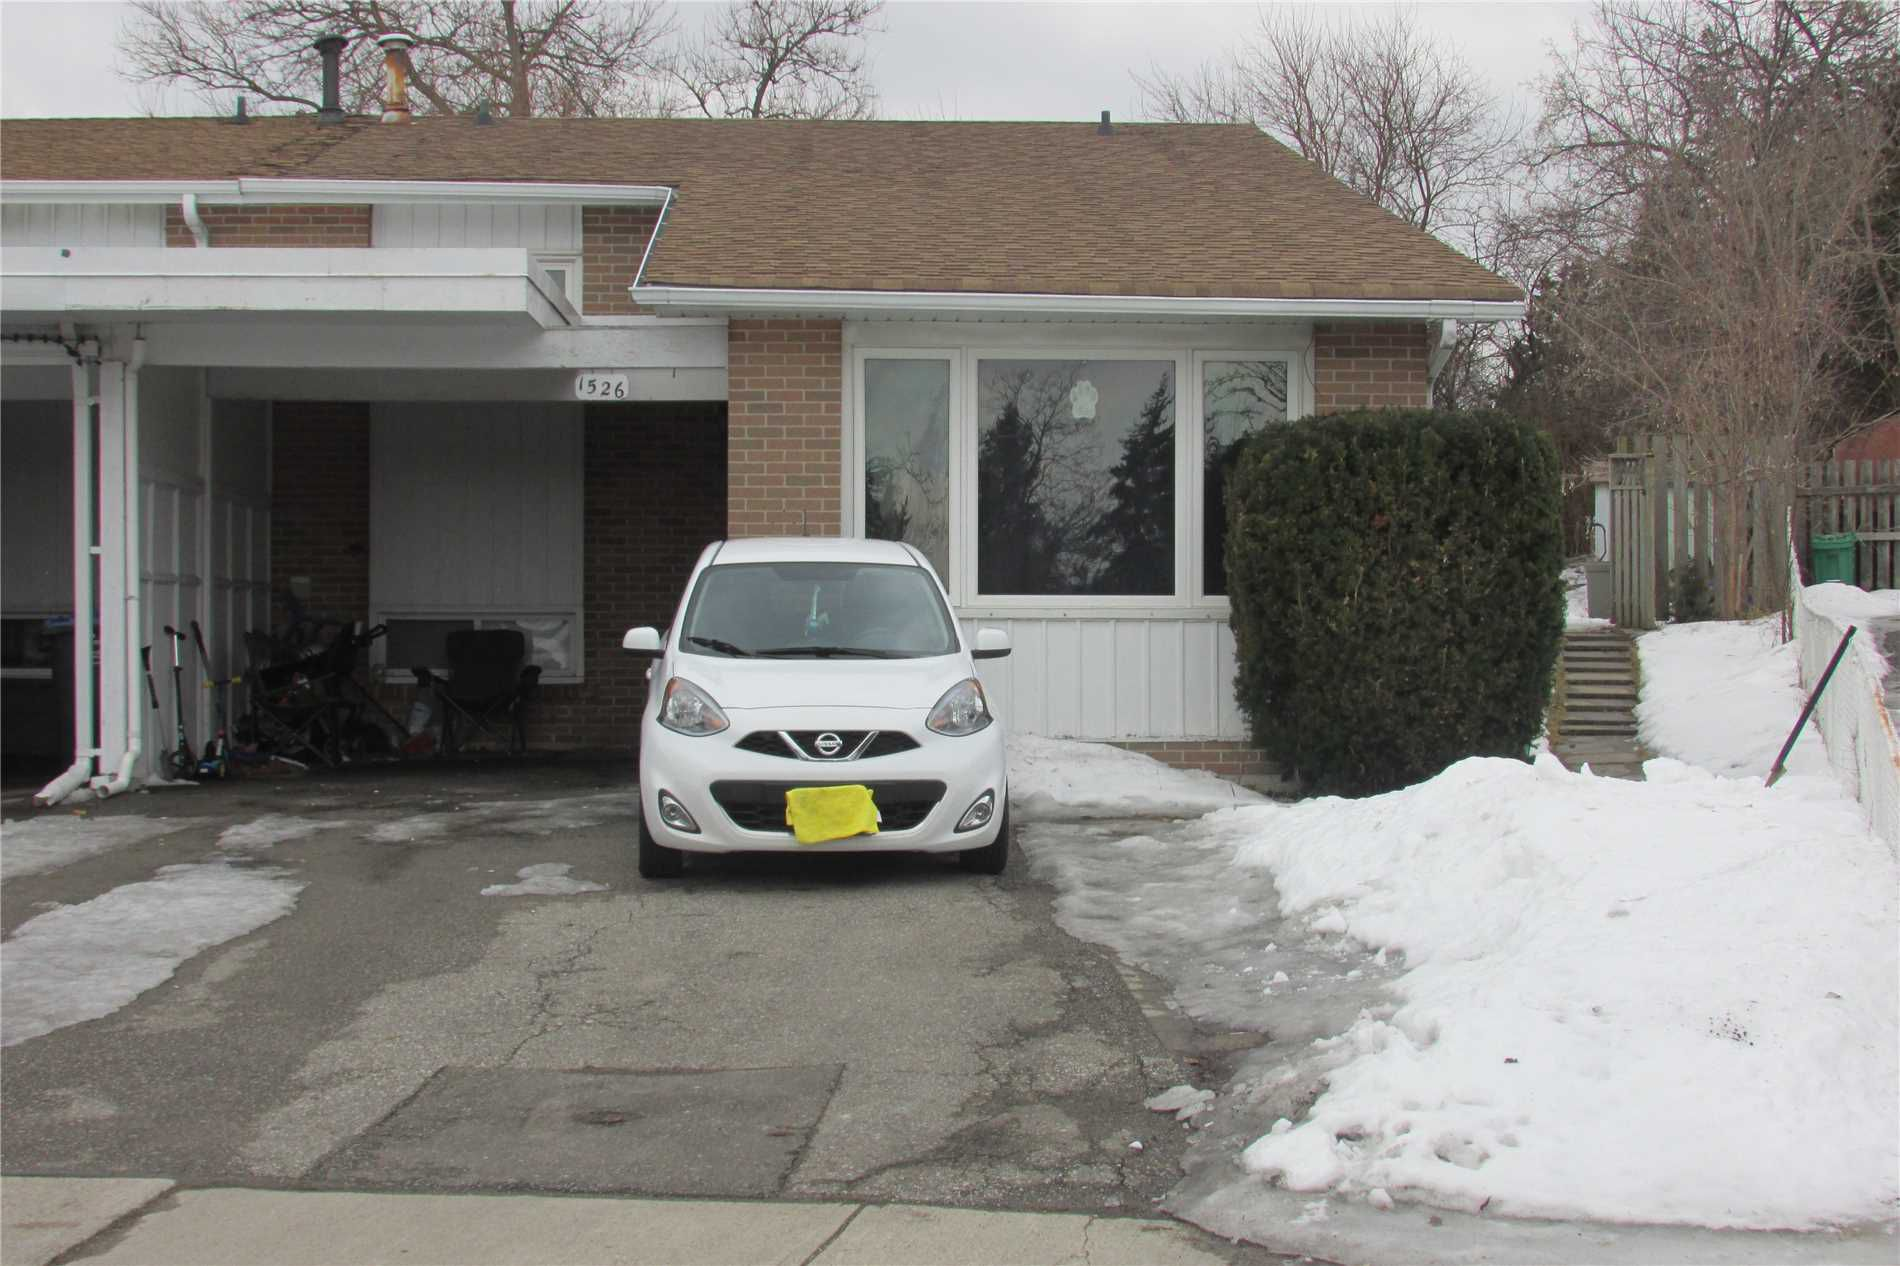 Main Photo: 1526 Swanage Crescent in Mississauga: Clarkson House (Backsplit 3) for sale : MLS®# W4379063